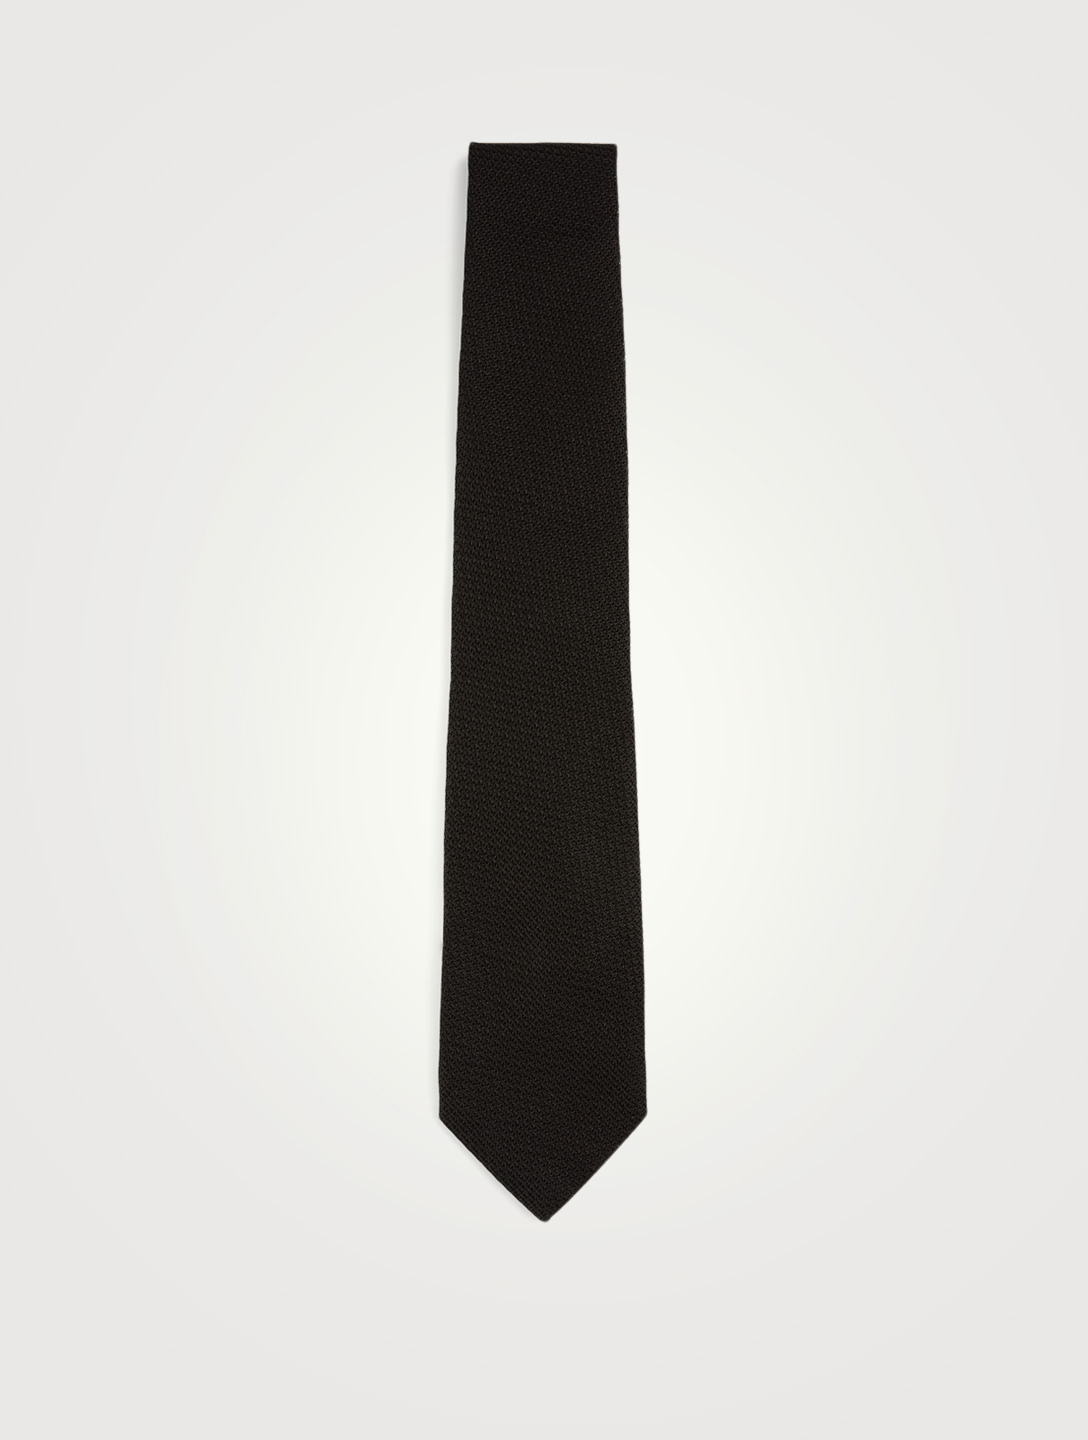 TOM FORD Thin Knit Tie Men's Black